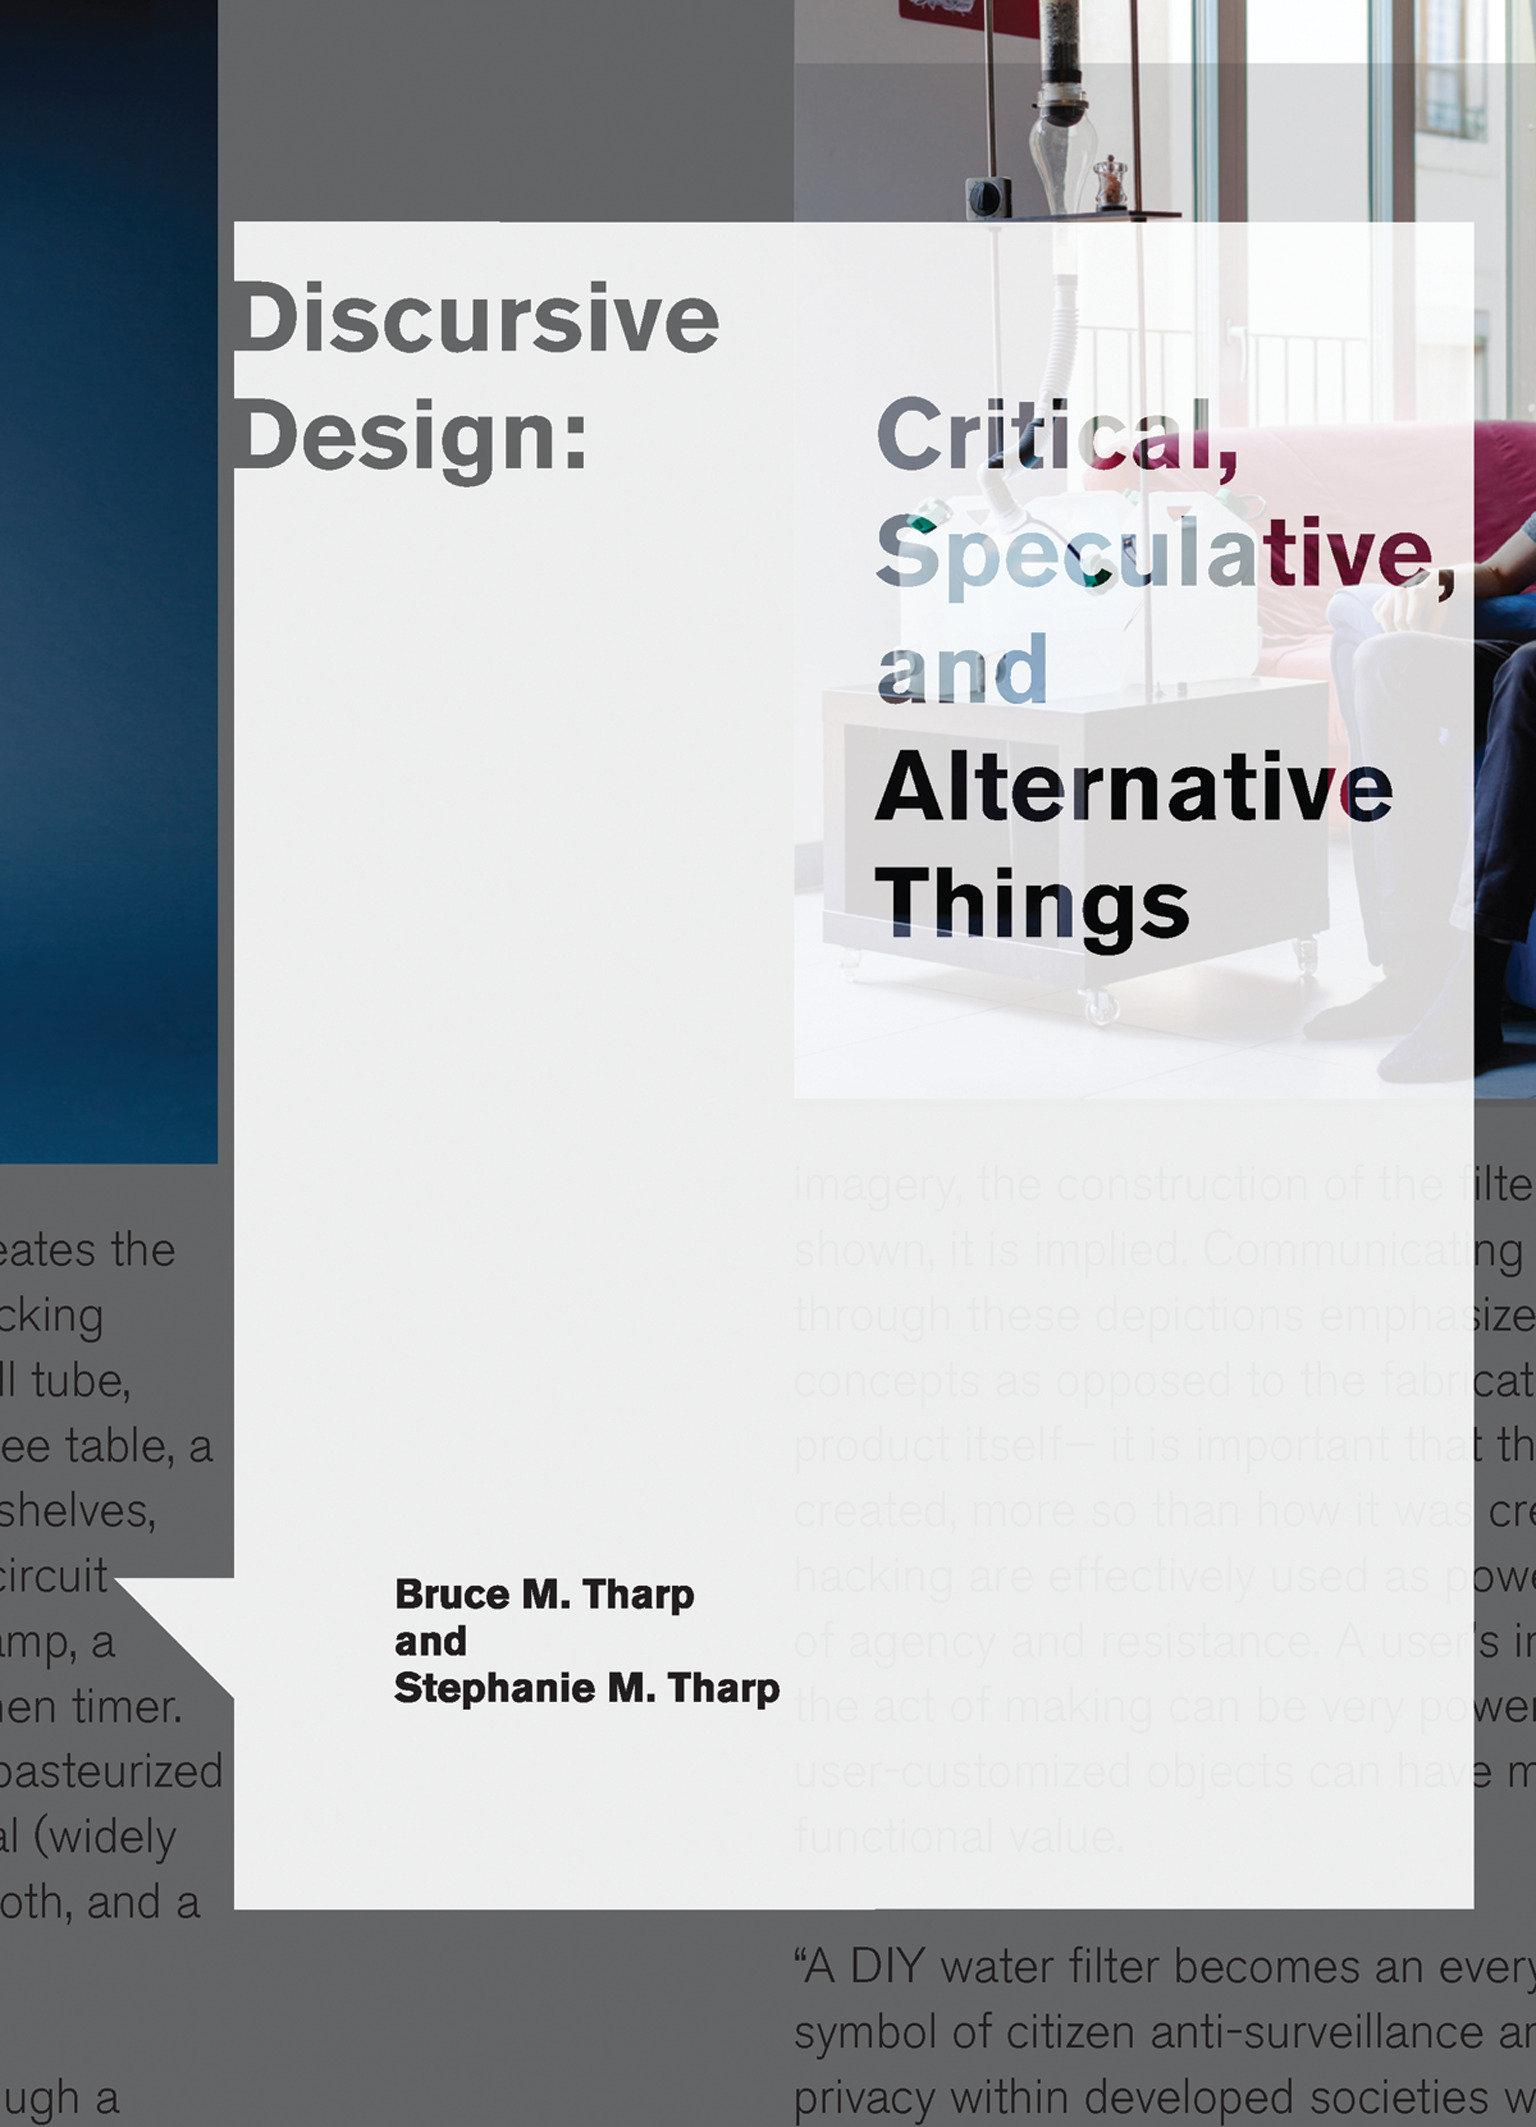 Discursive Design  Critical, Speculative, and Alternative Things  Bruce M. Tharp  Buch  Design Thinking, Design Theory  Englisch  2019